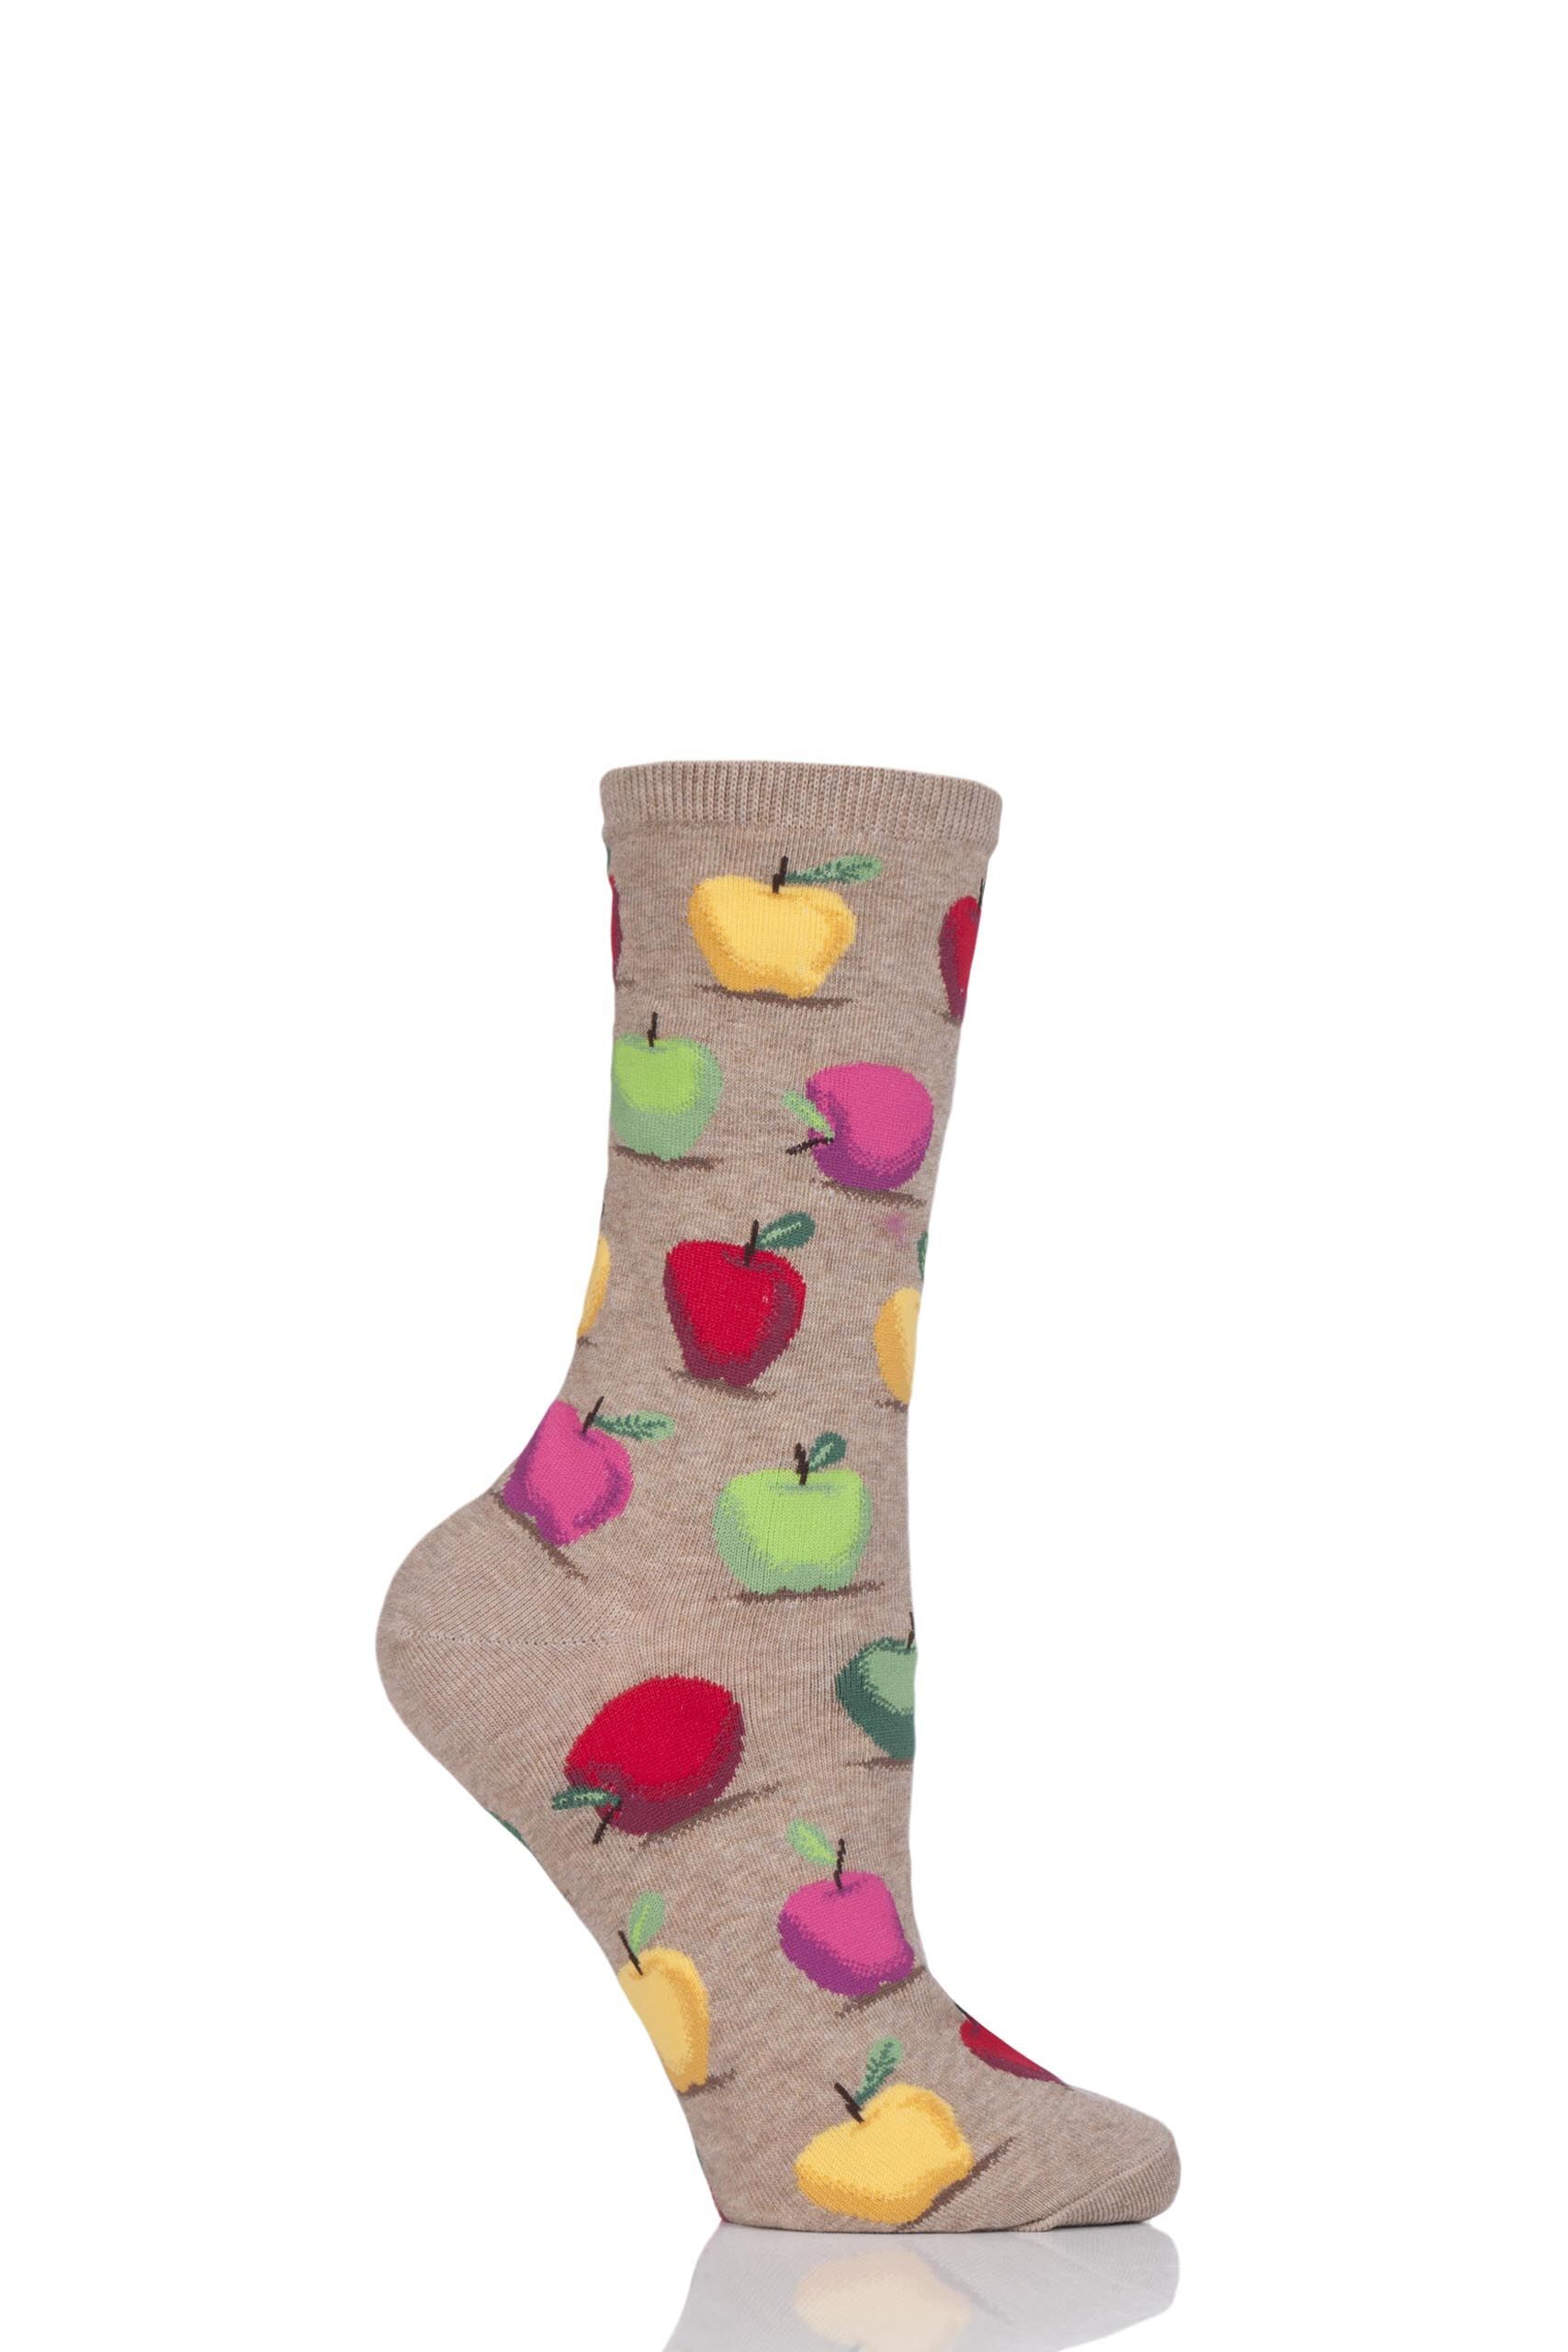 Image of 1 Pair Beige HotSox All Over Apples Cotton Socks Ladies 4-9 Ladies - Hot Sox